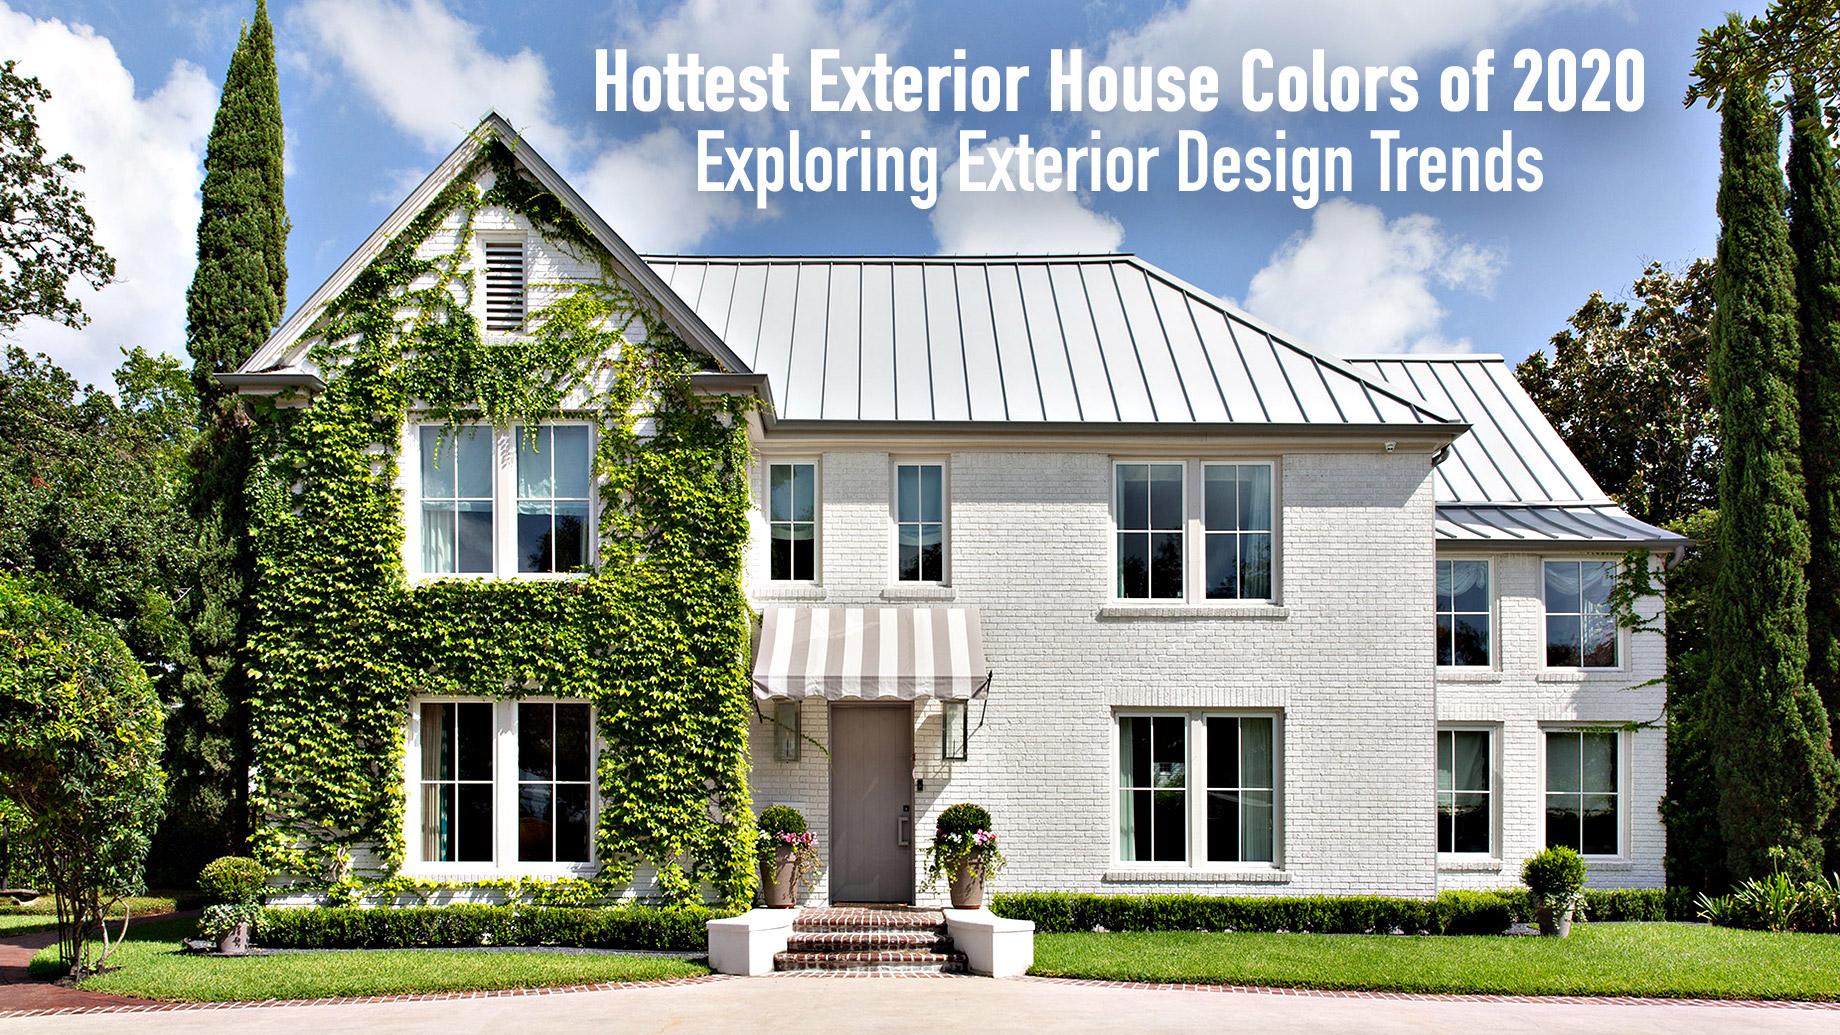 Hottest Exterior House Colors of 2020 - Exploring Exterior Design Trends